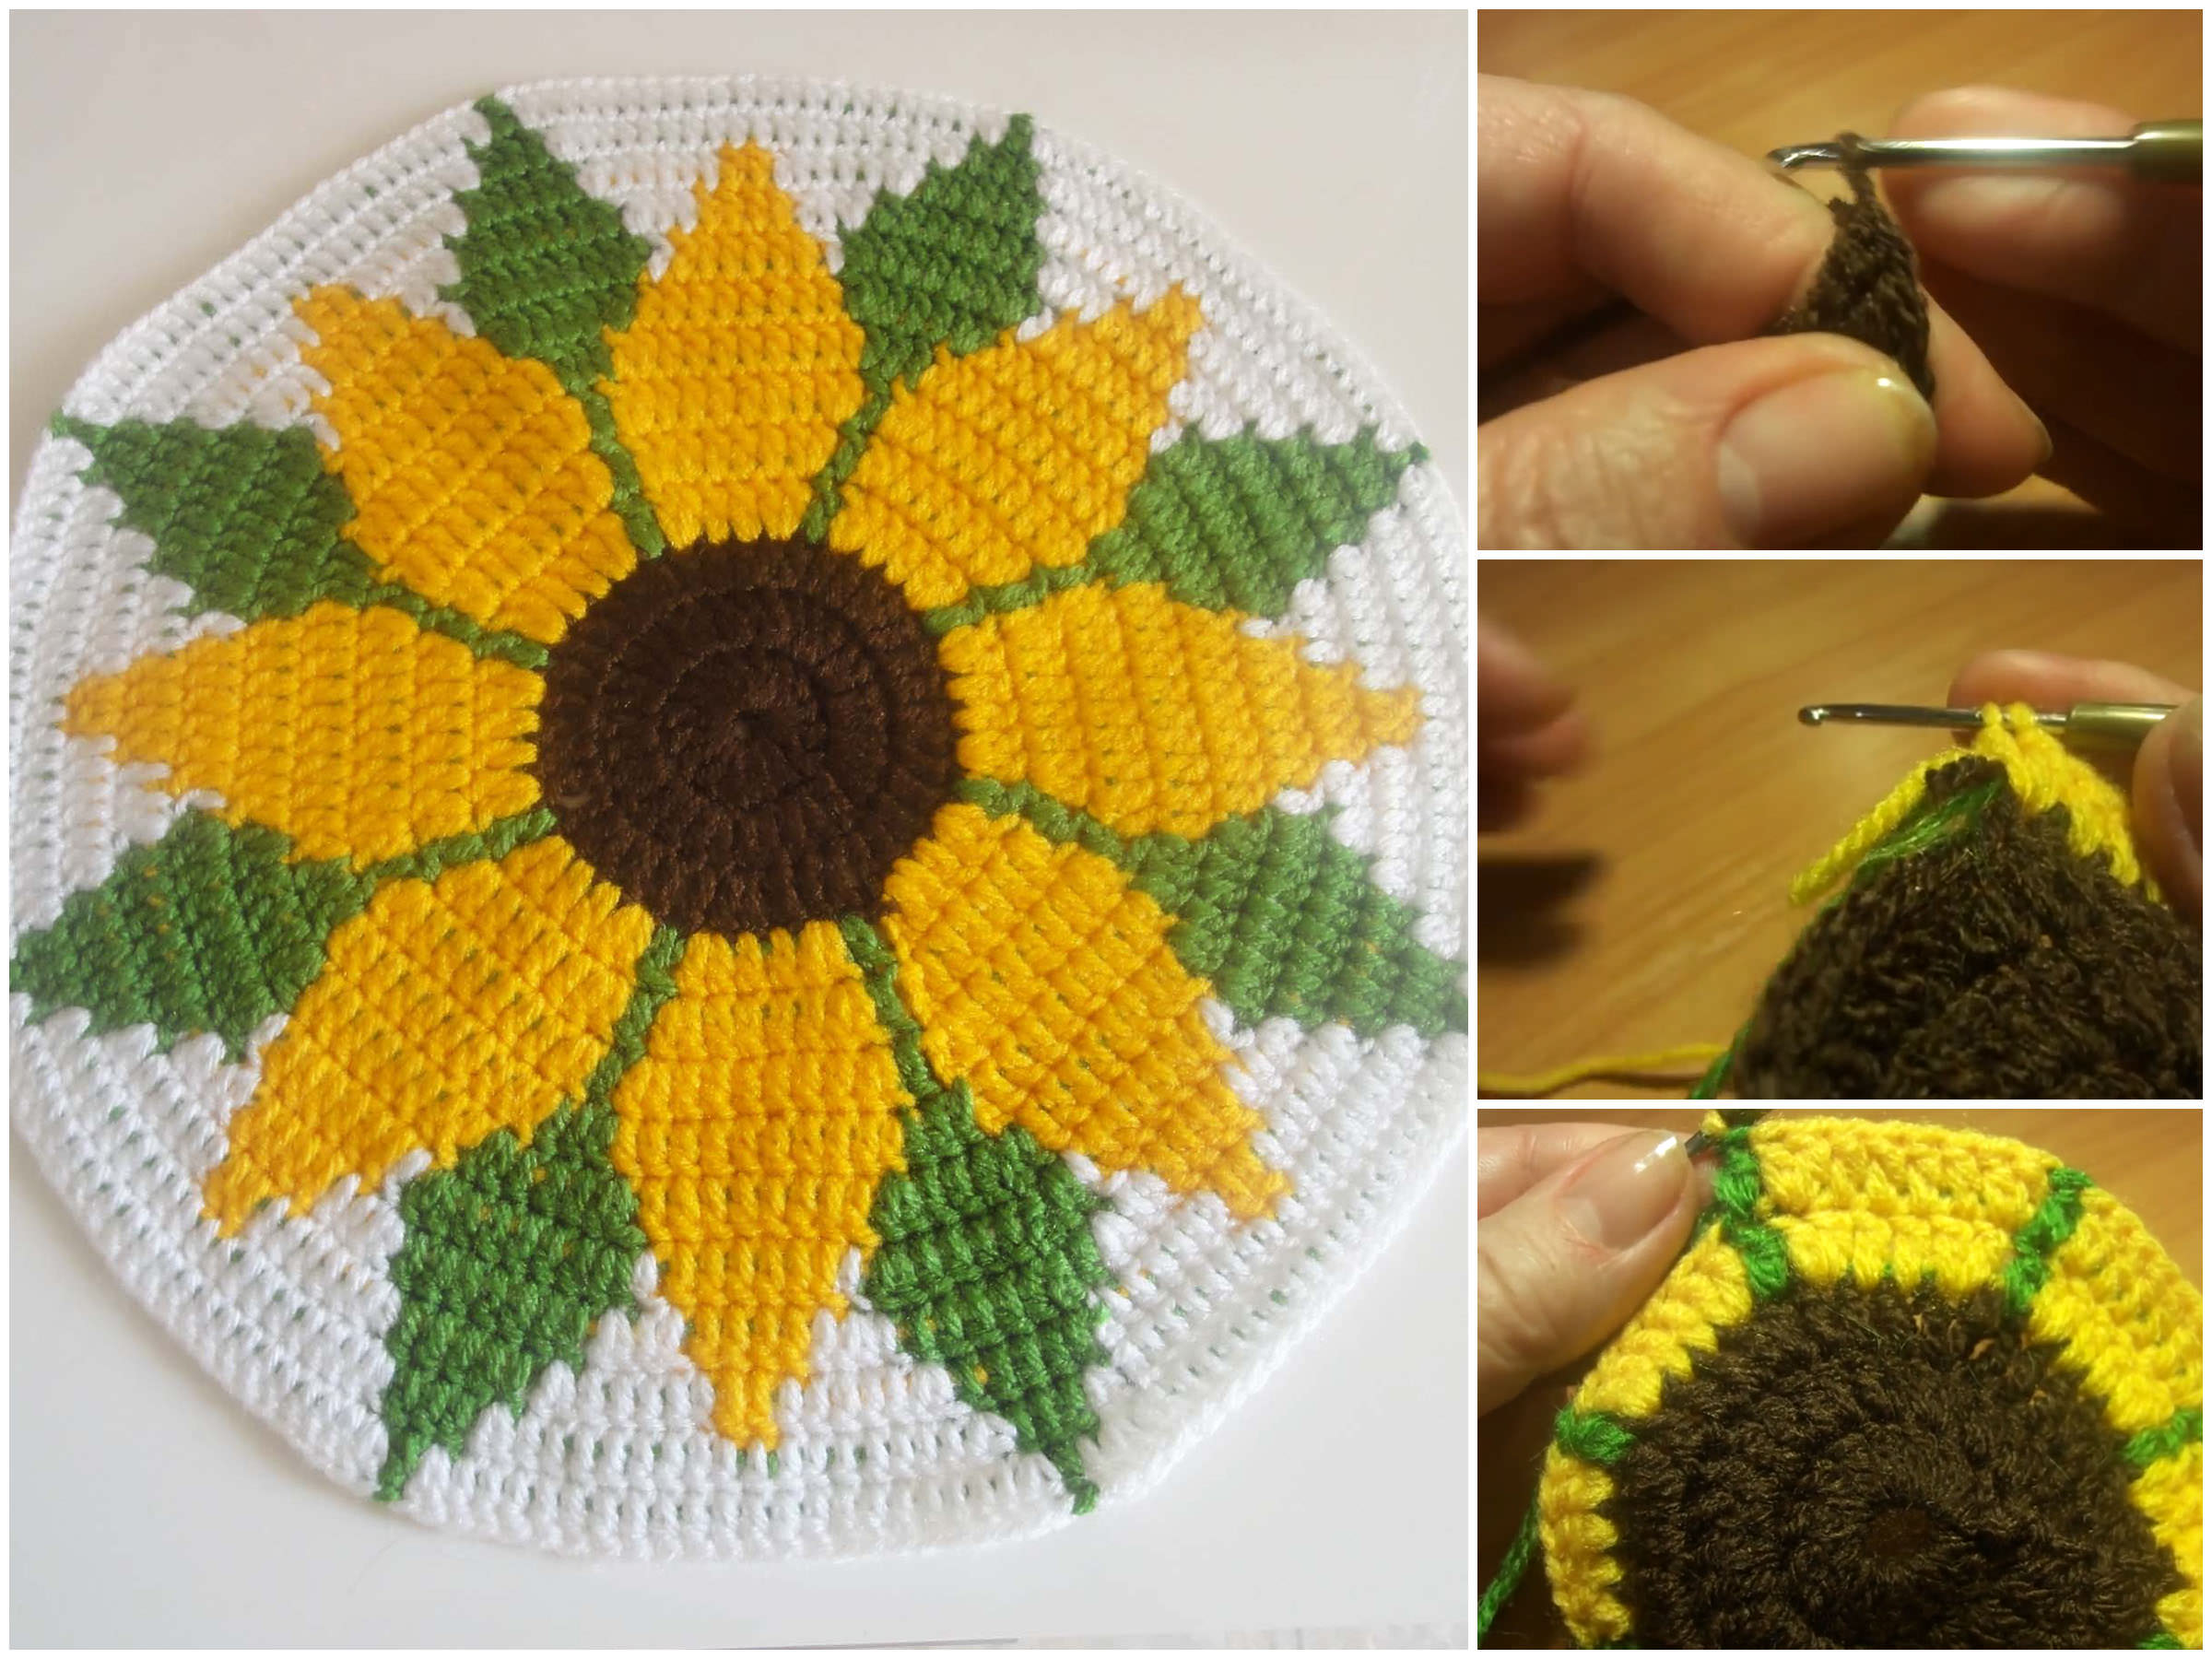 Crochet Sunflower Coaster Tutorial Crochetbeja